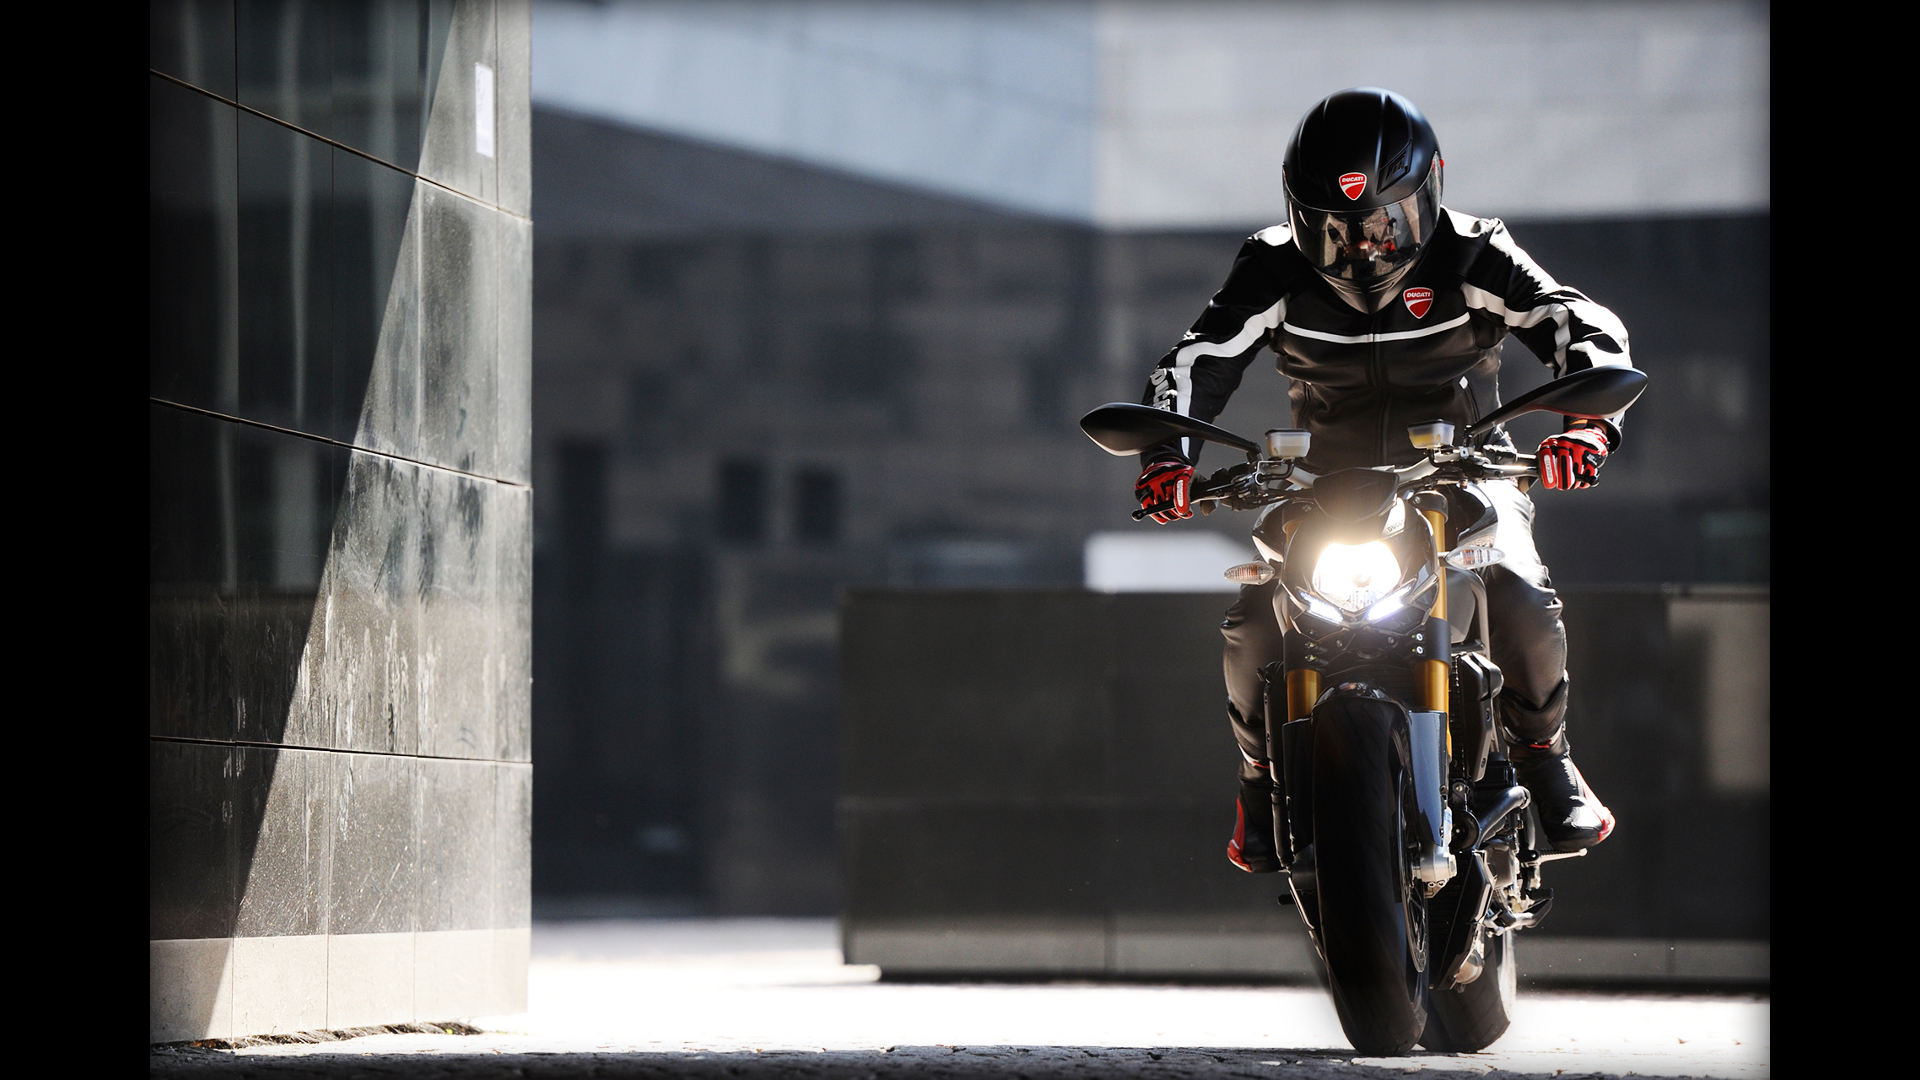 Ducati vehicles motorbikes streetfighter